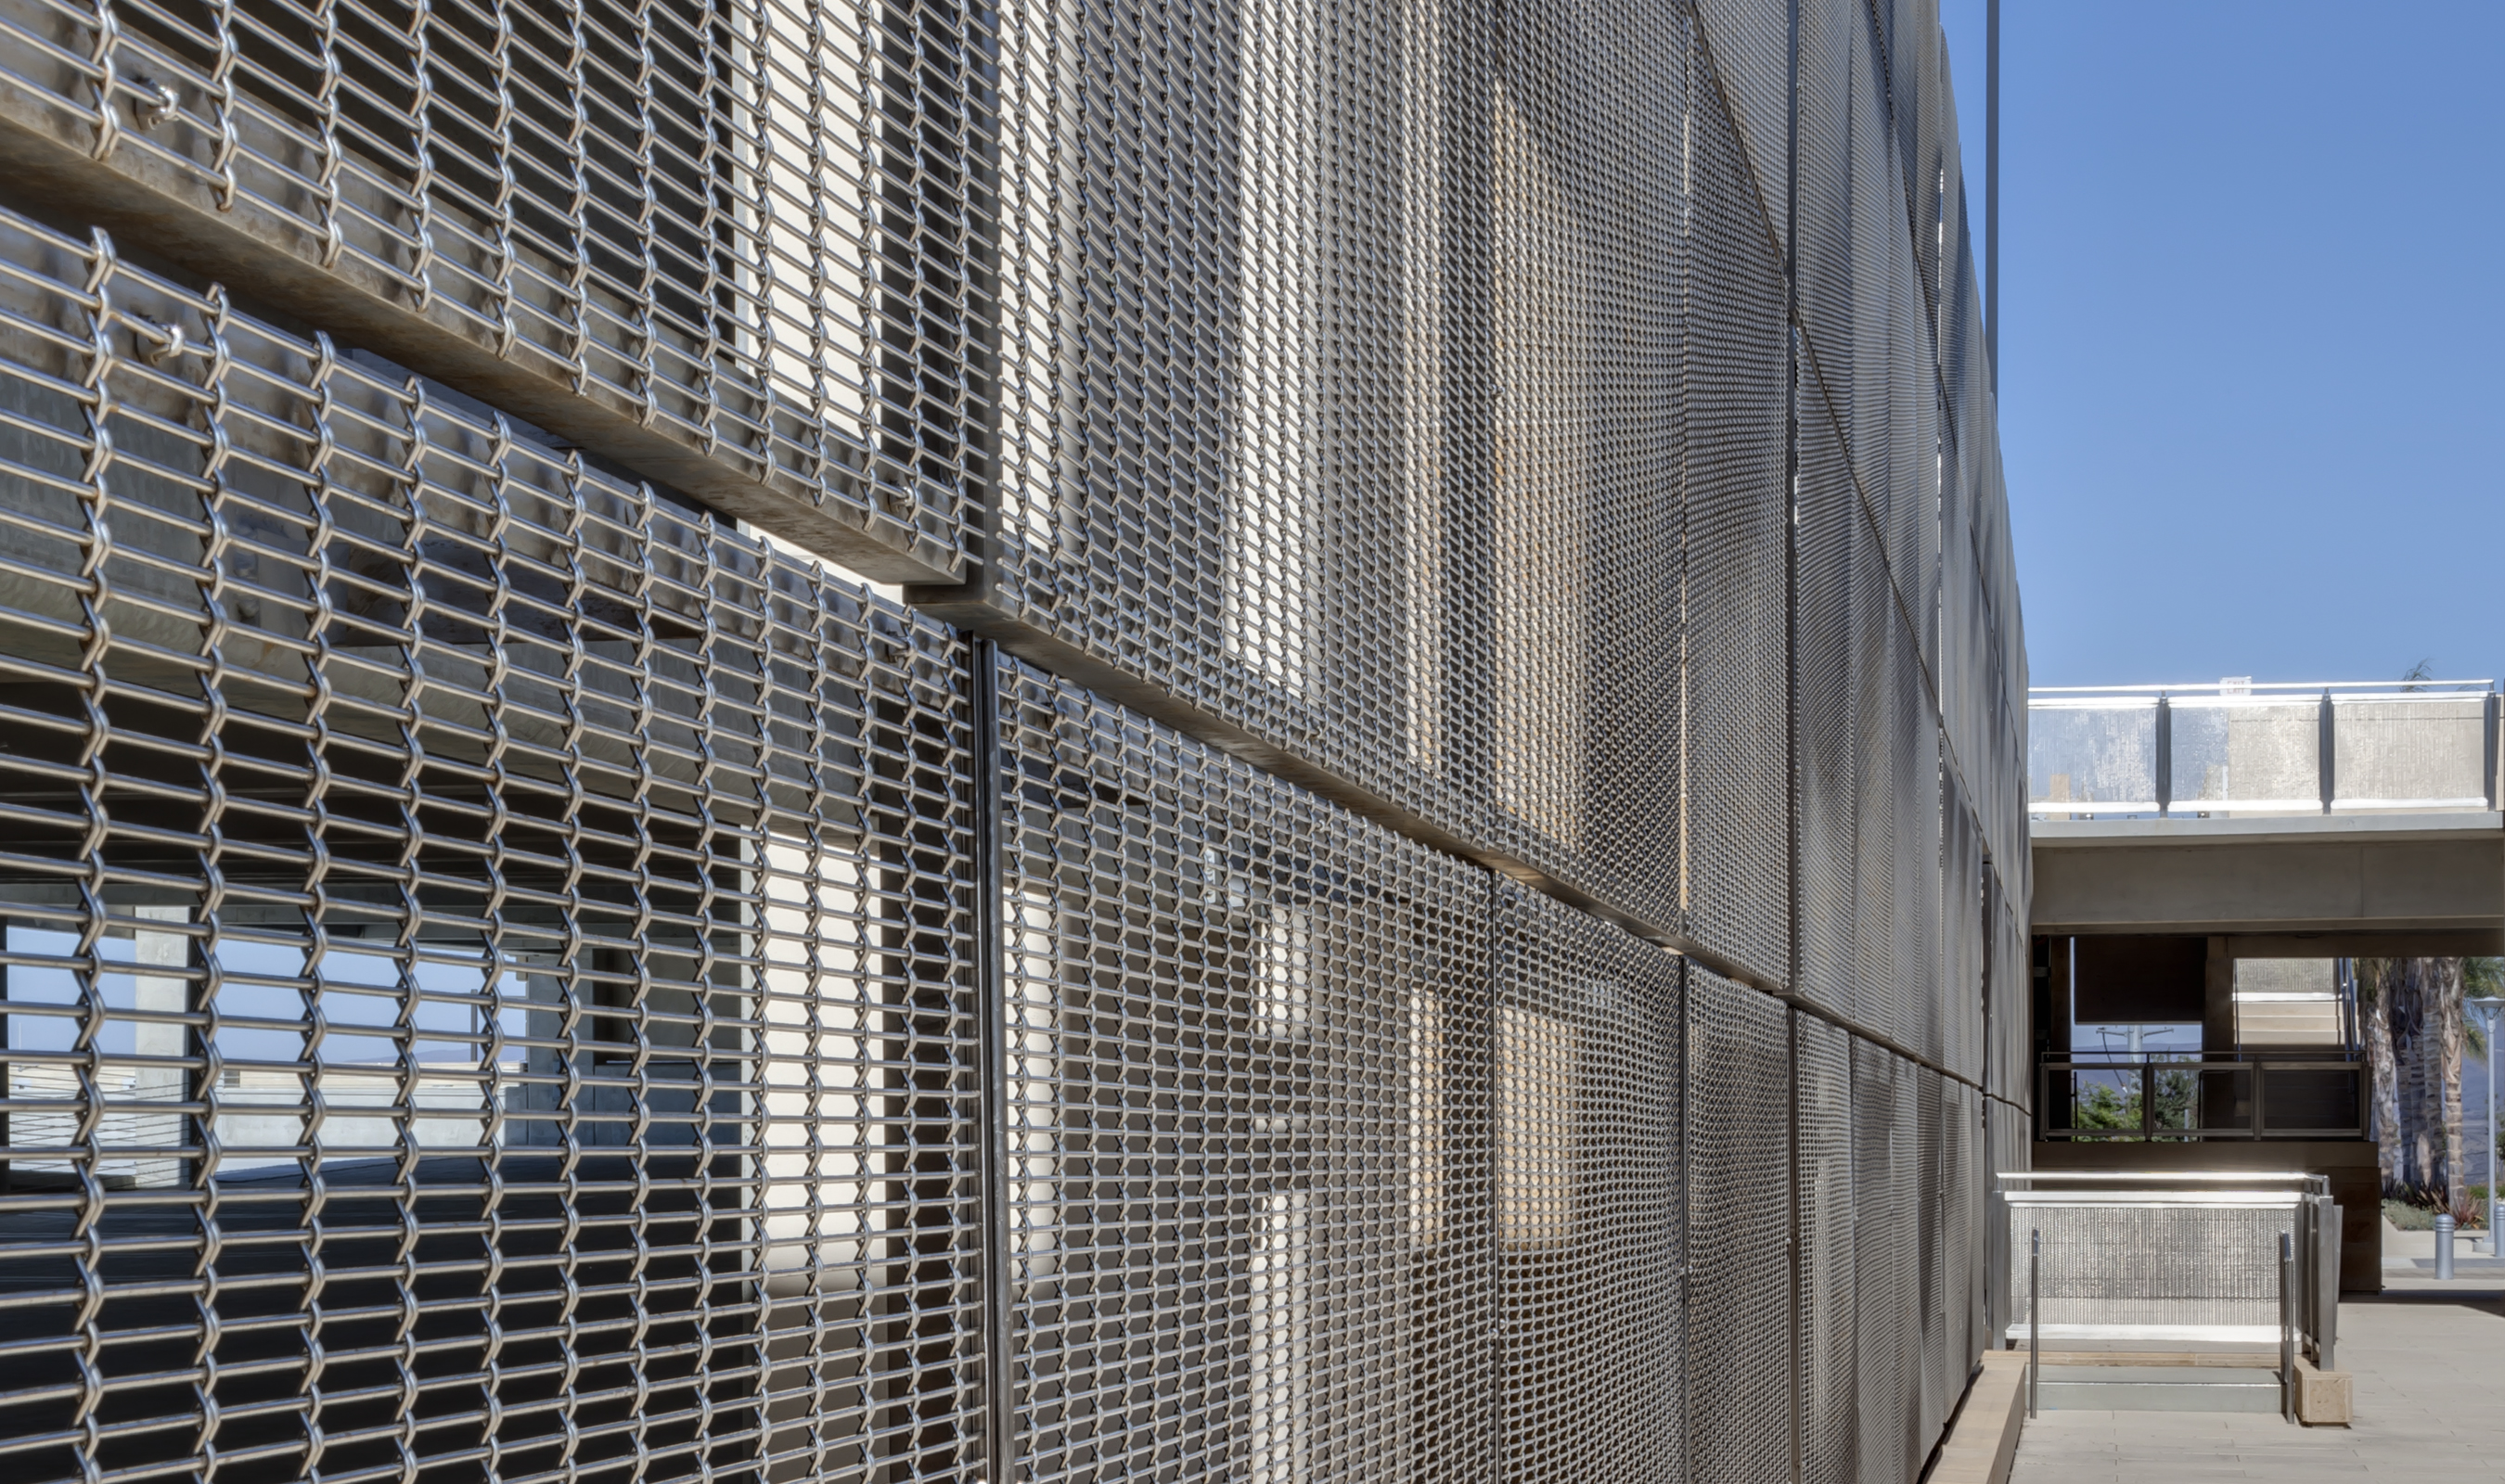 The rectangular openings in the FPZ-10 pattern allow natural light transmission, and the stainless steel metal fabric picks up the stairwells' blue and green hues.